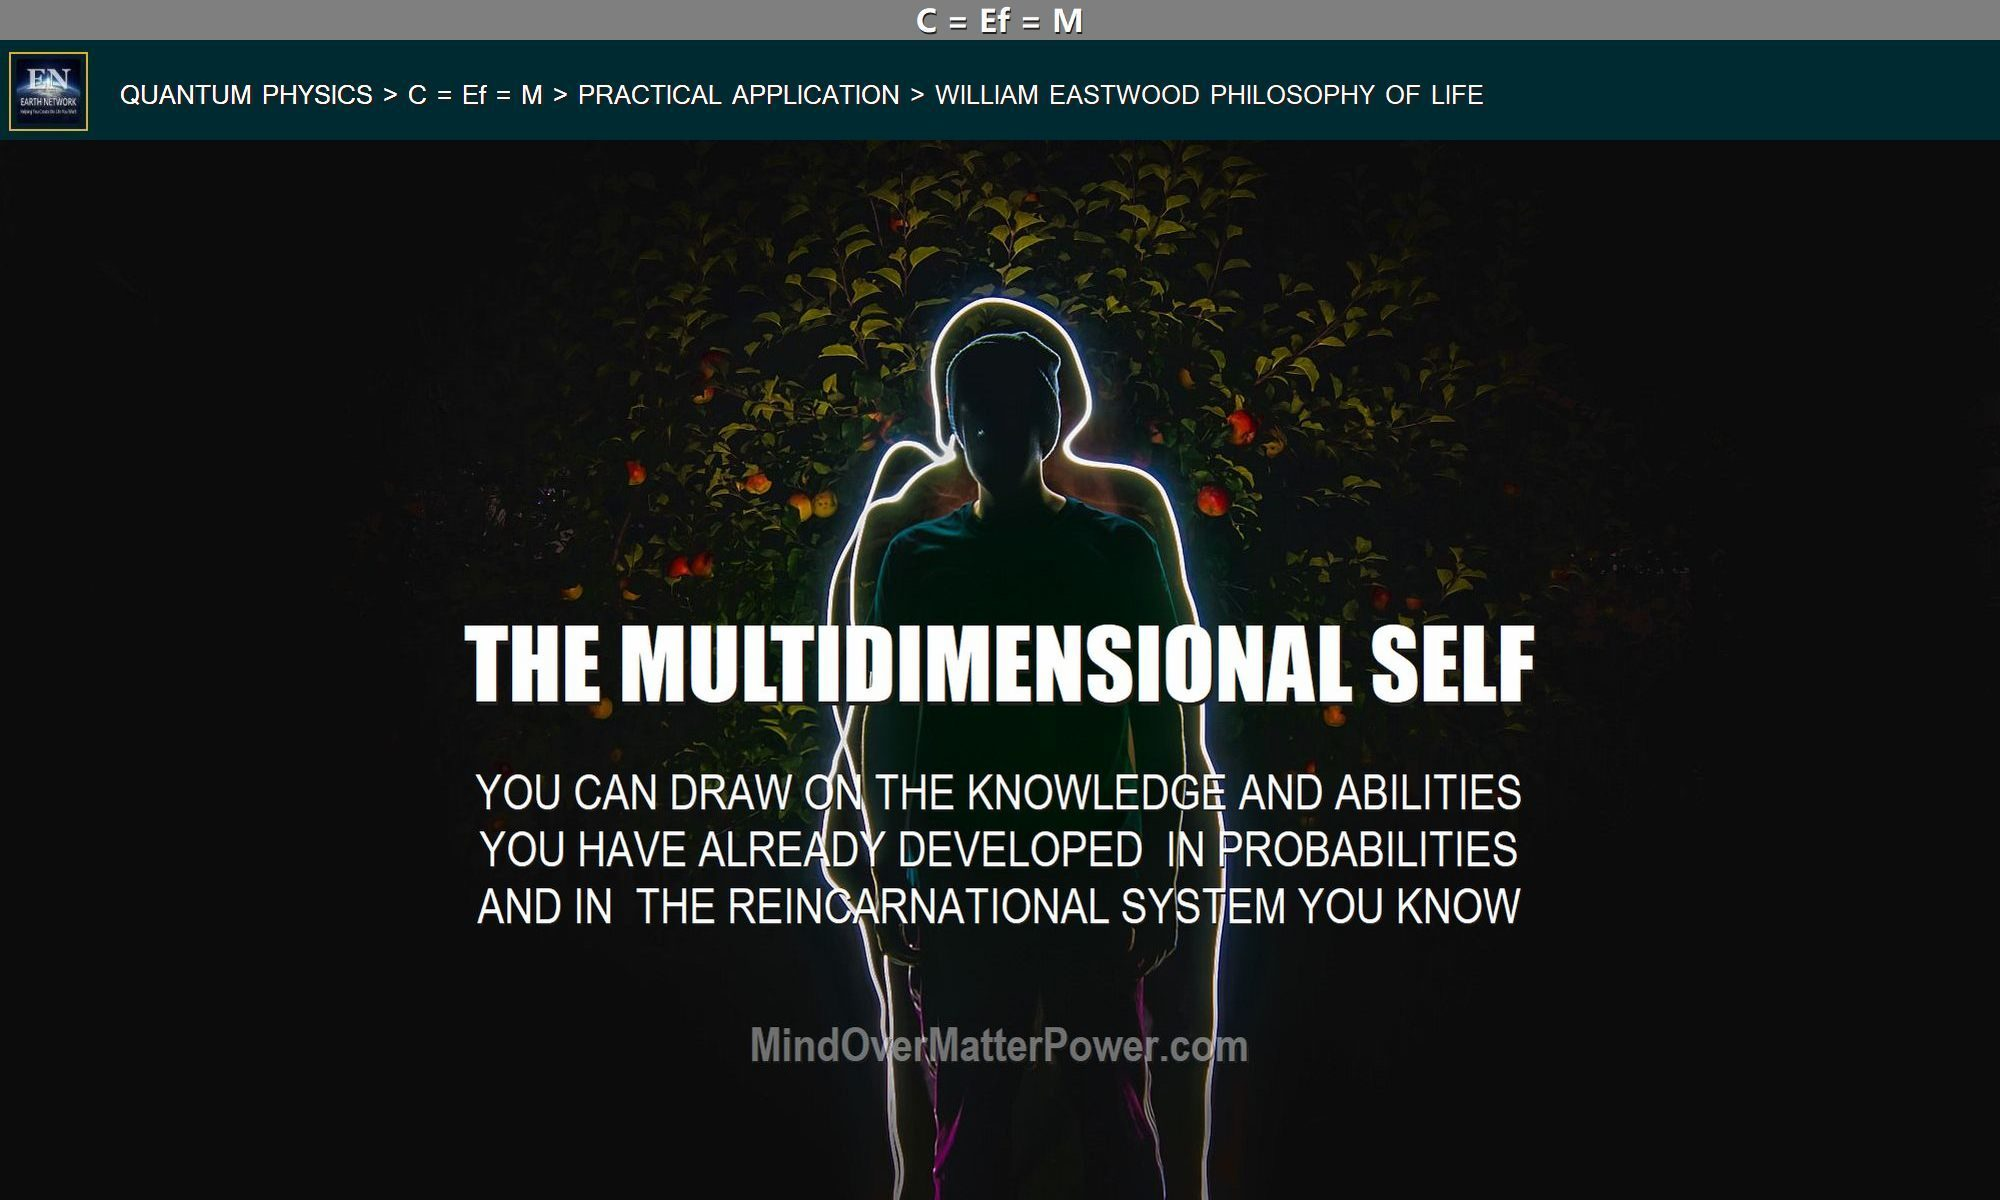 Man depicts multidimensional-self-definition-description-how-to-draw-on-the-power-of-the-entity-soul-spirit-inner-mind